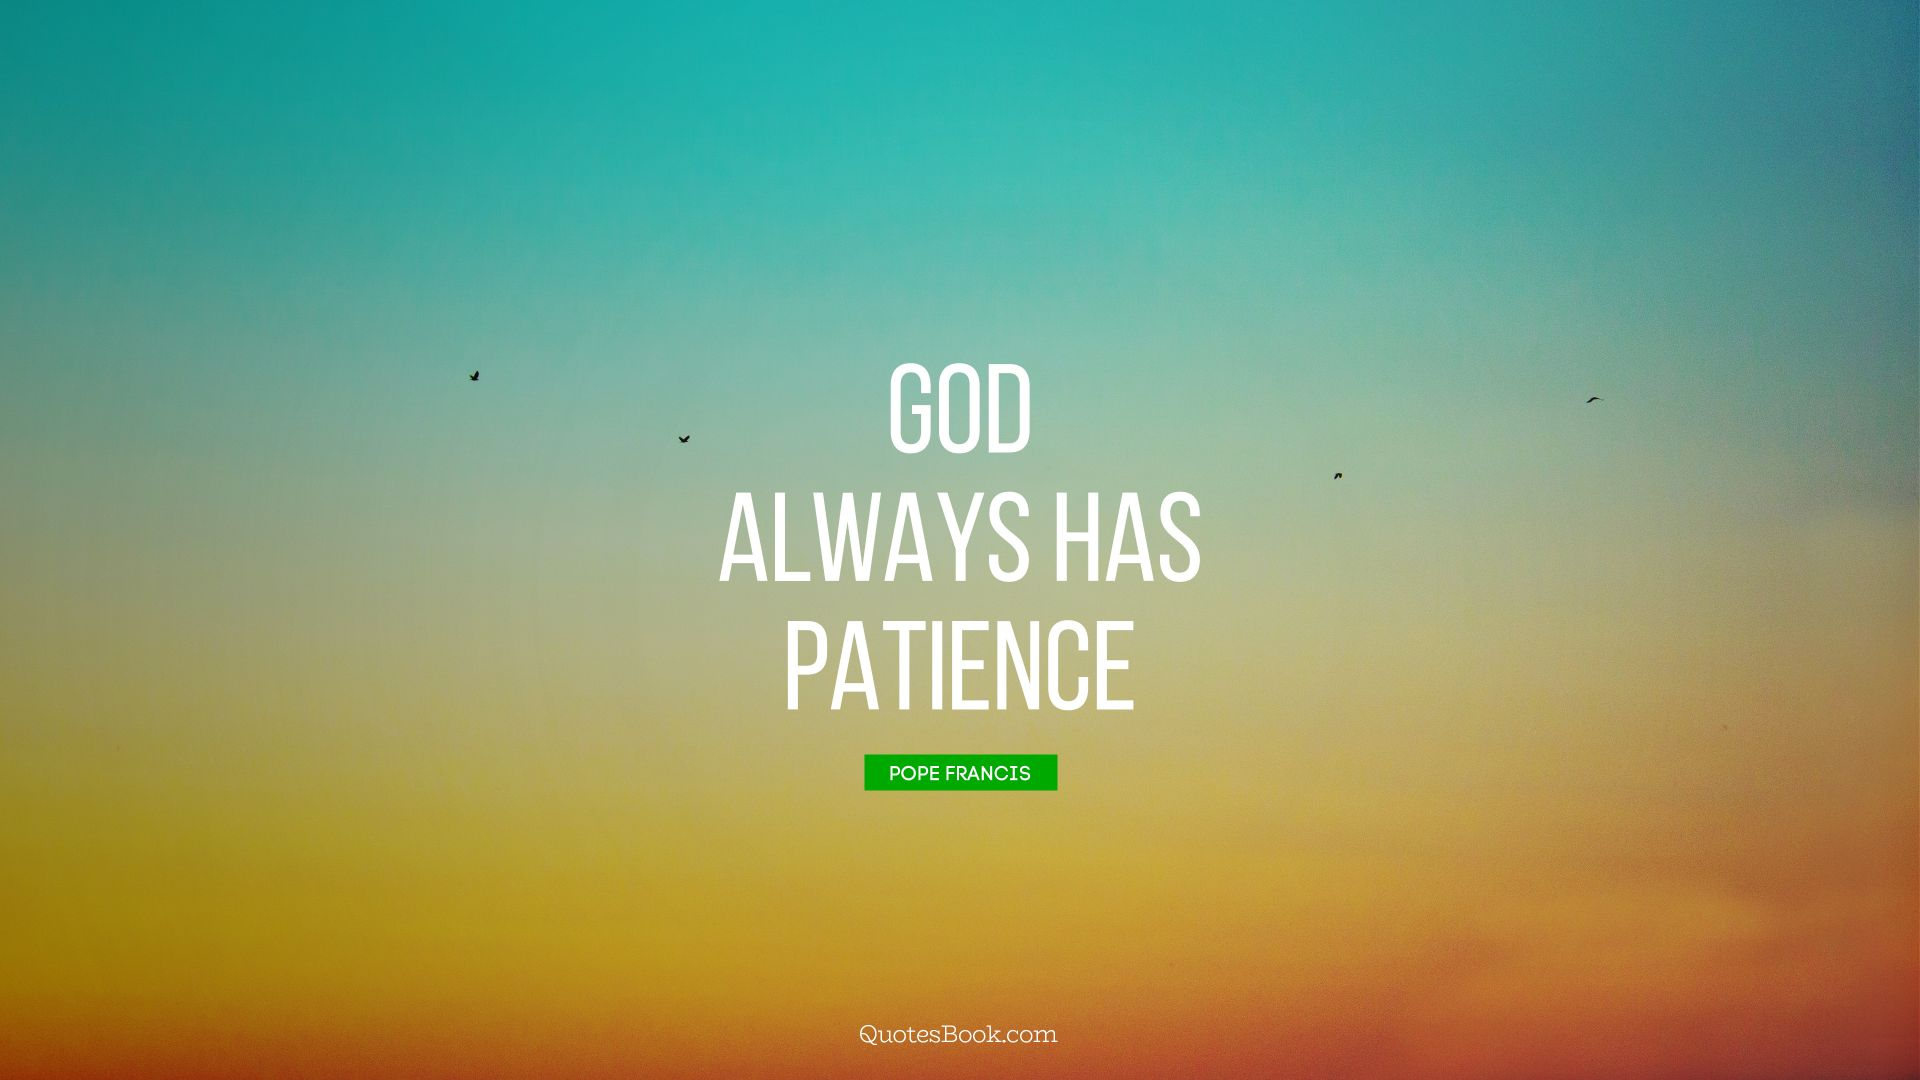 God always has patience. - Quote by Pope Francis